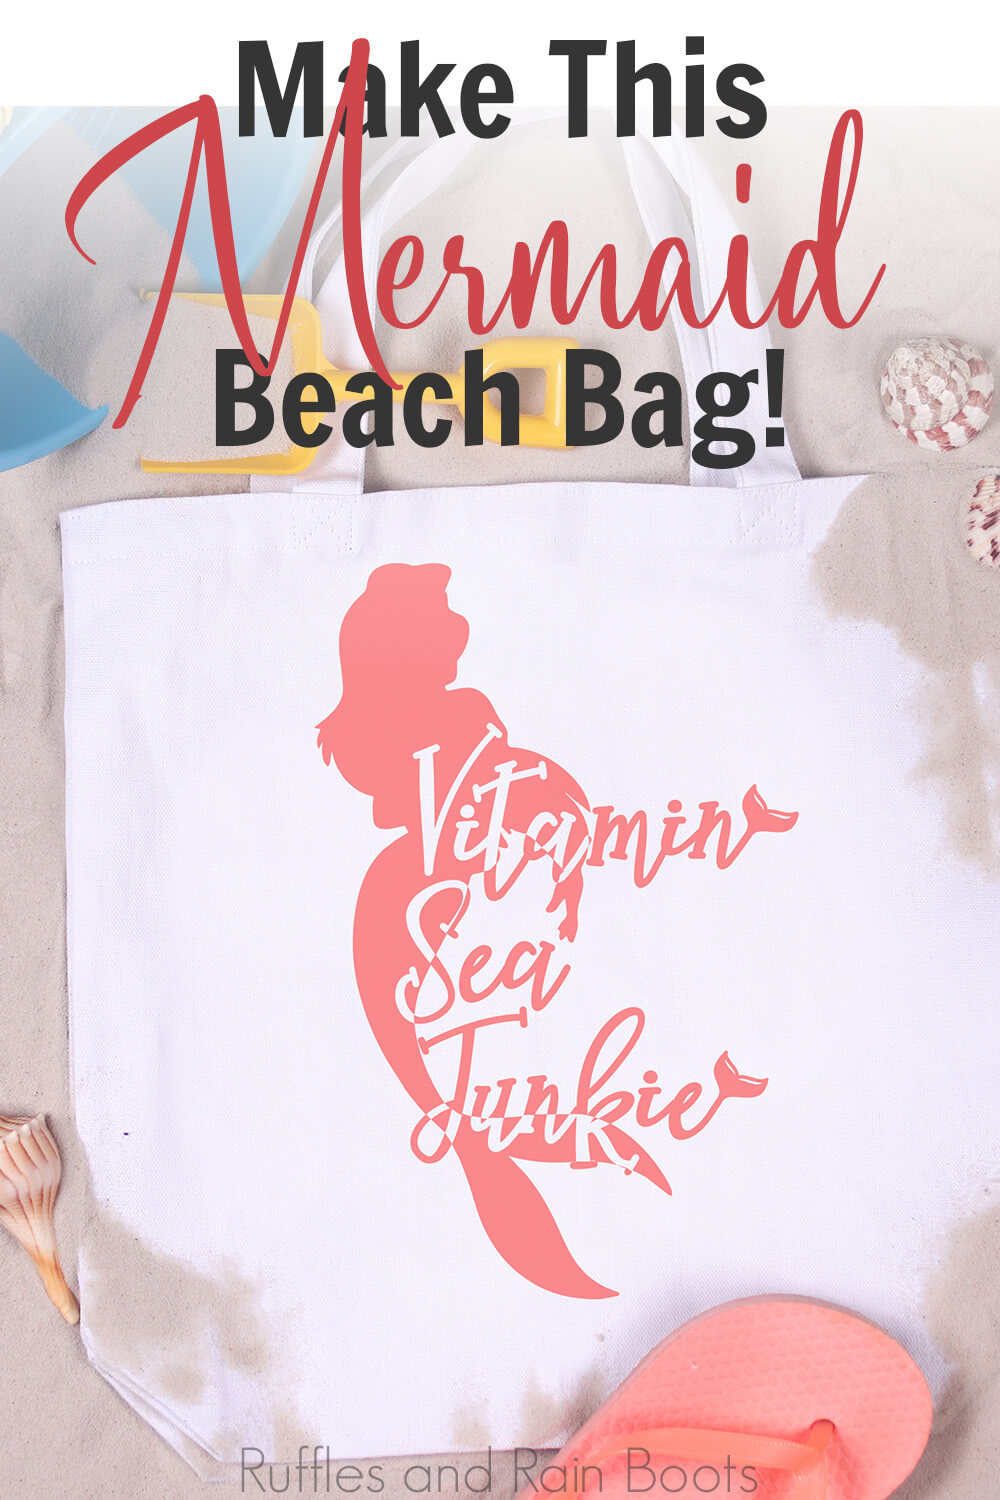 Vitamin Sea Junkie mermaid files for the cricut on a beach bag on a background of sand surrounded by shells, flip flops and a kid's toy bucket and shovel with text which reads make this mermaid beach bag!